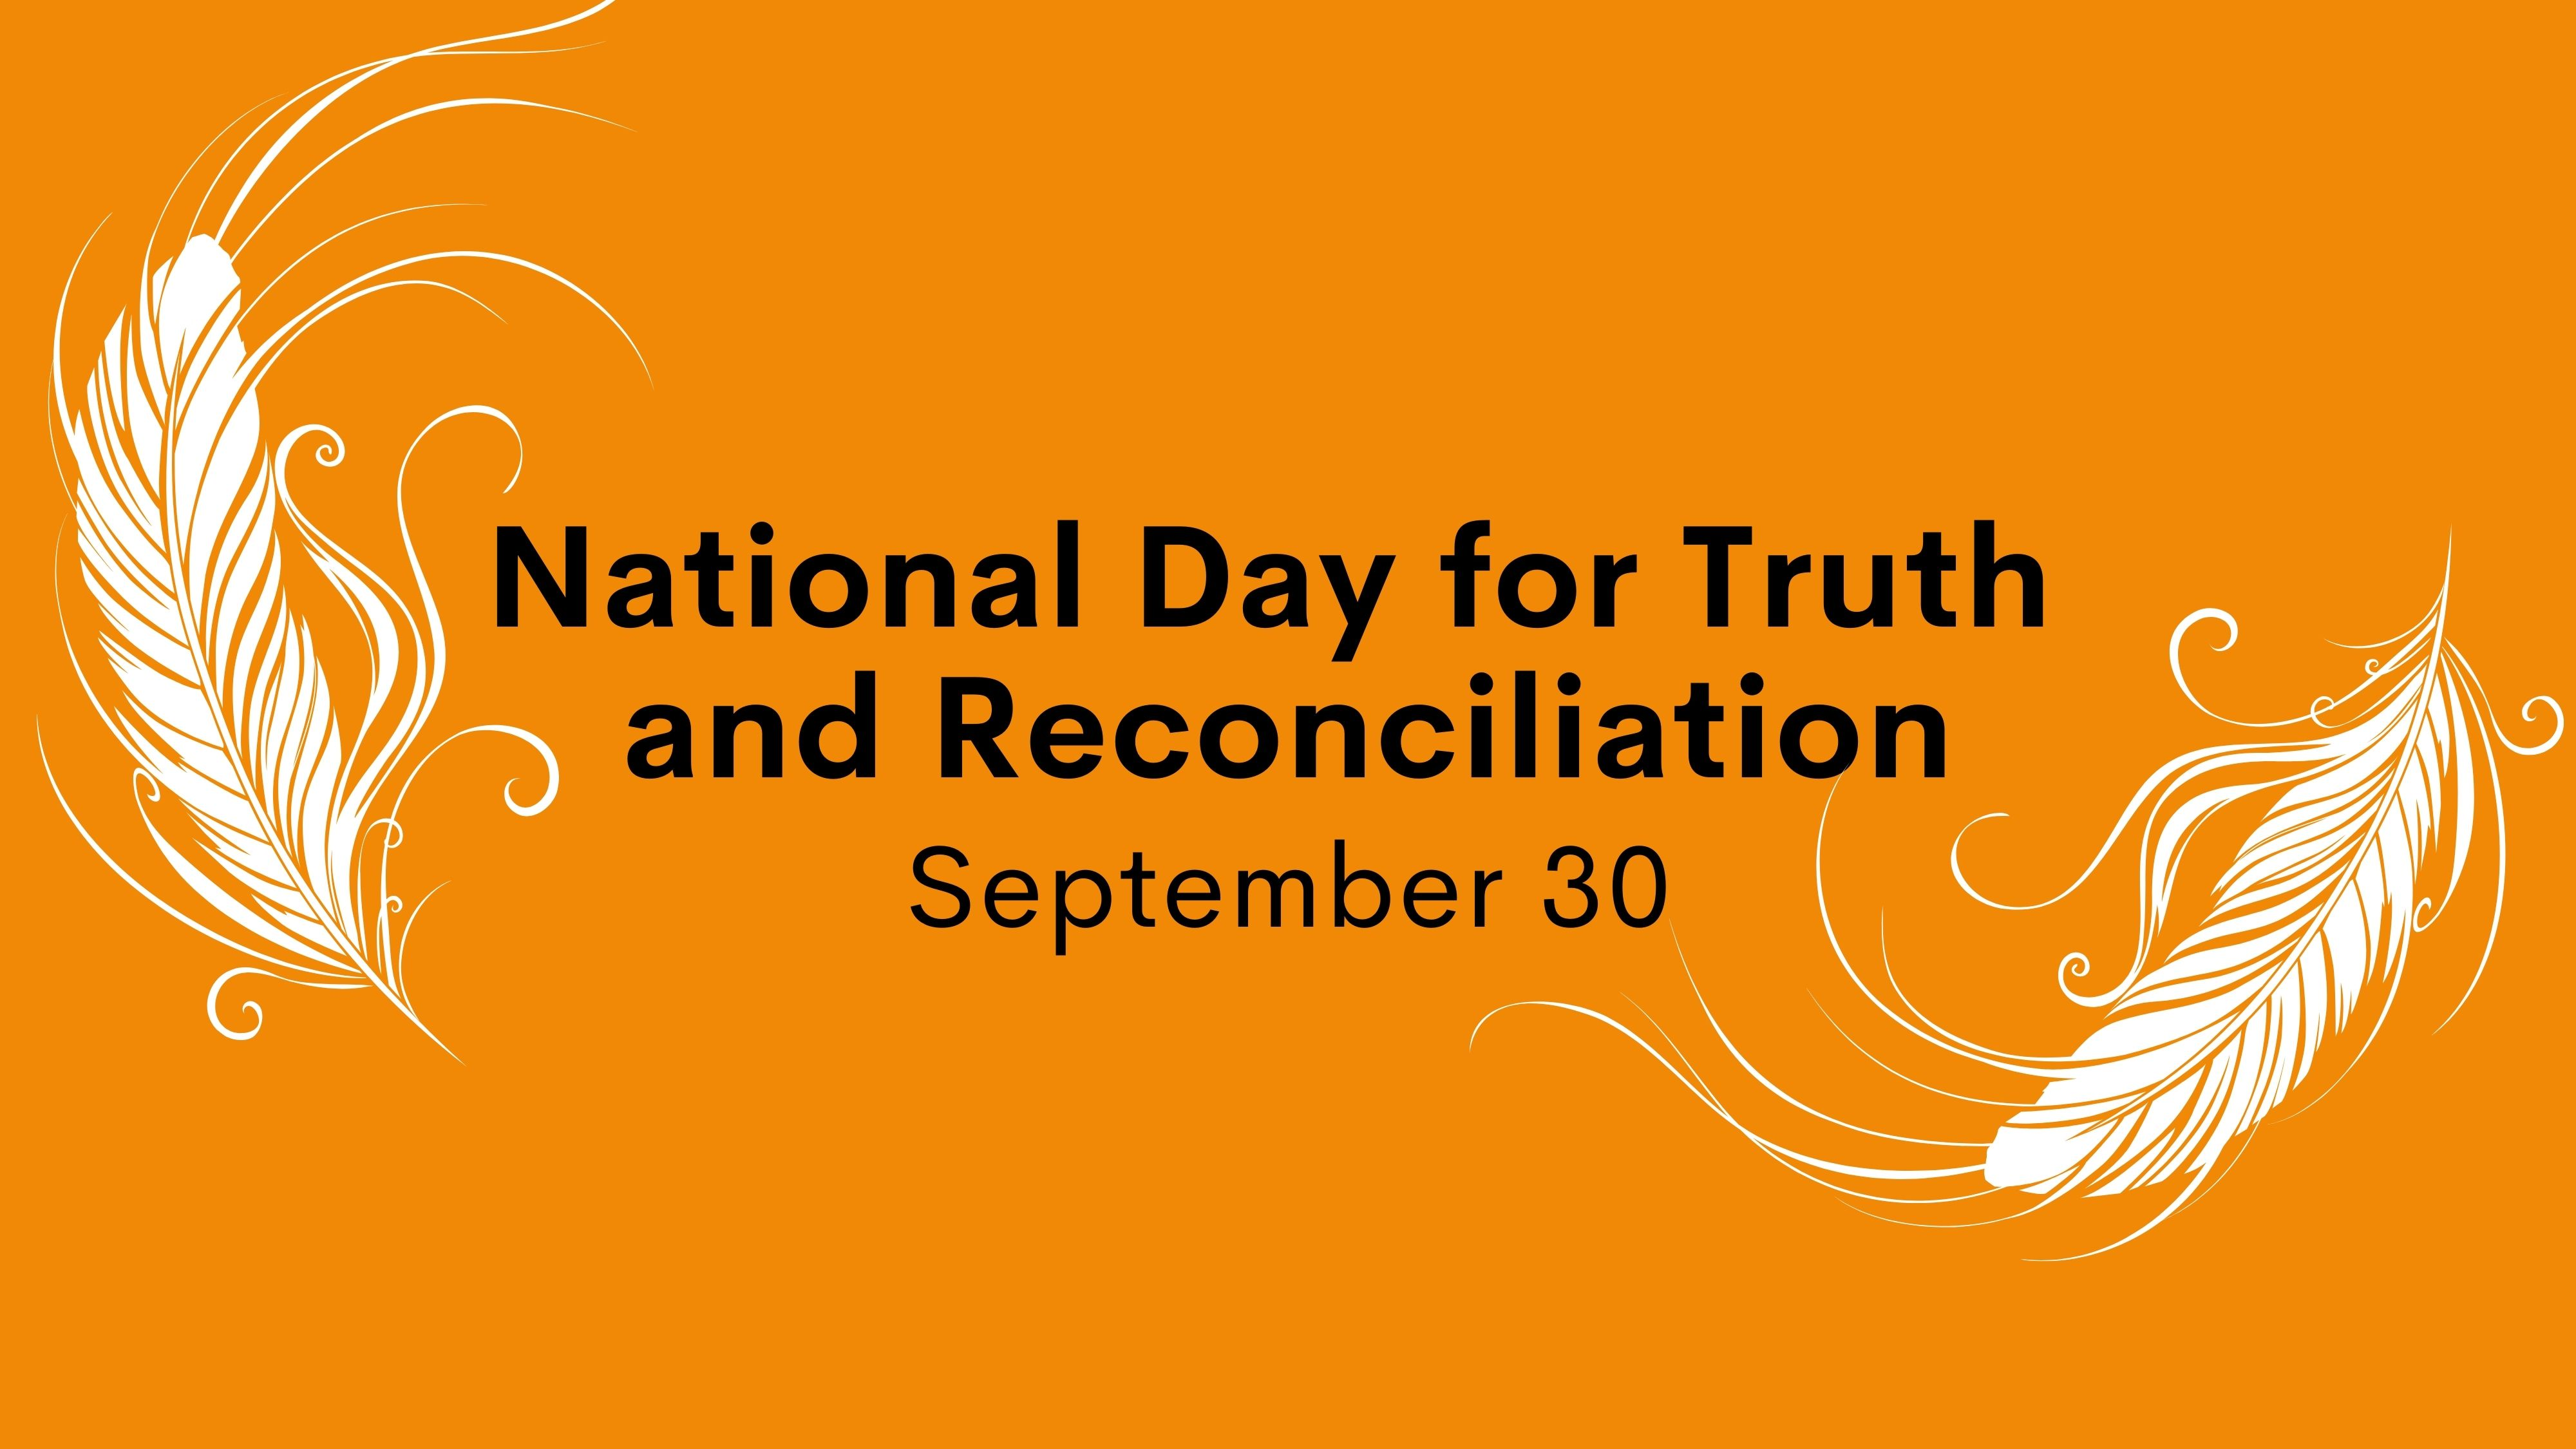 National Day for Truth and Reconciliation image